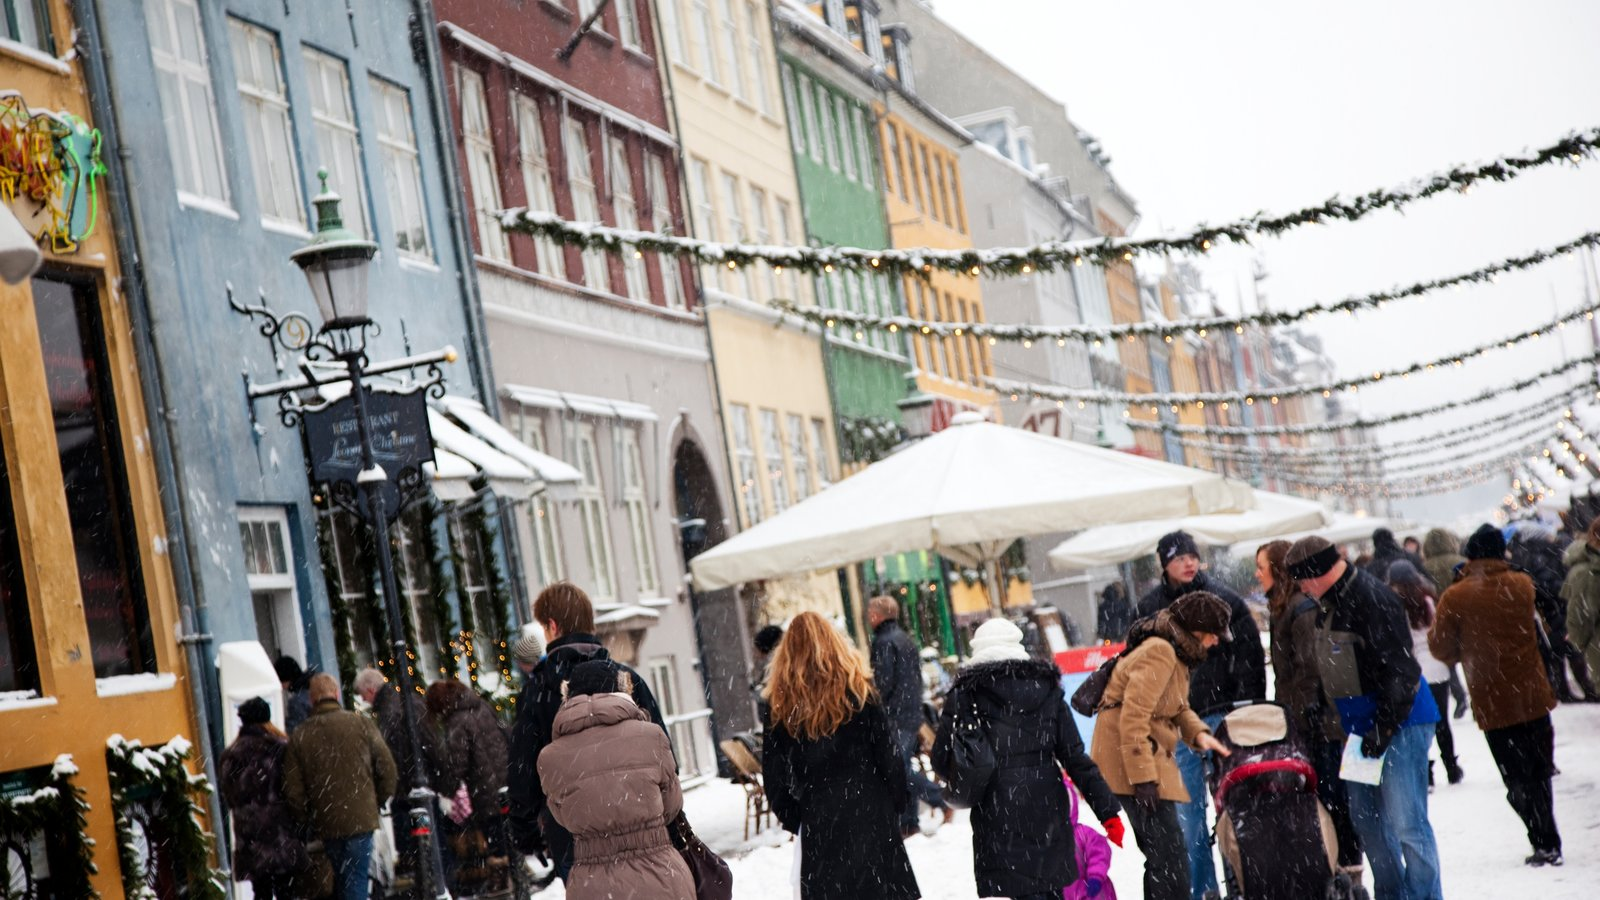 Nyhavn showing snow, a city and street scenes